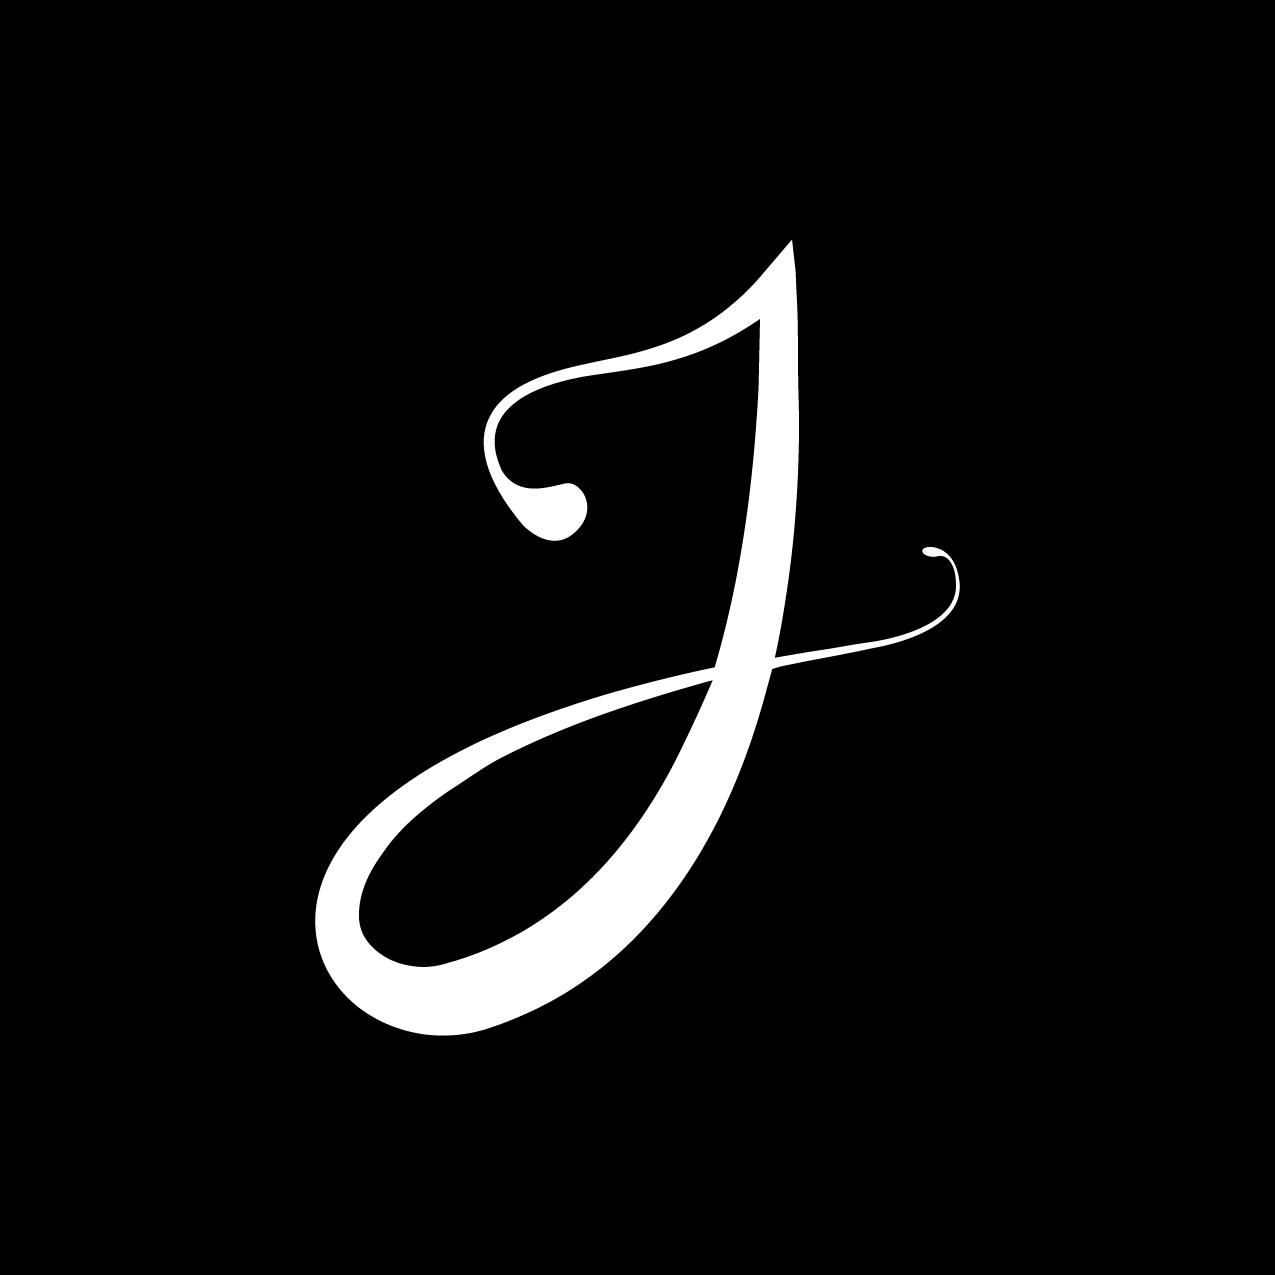 Letter J7 Design by Furia